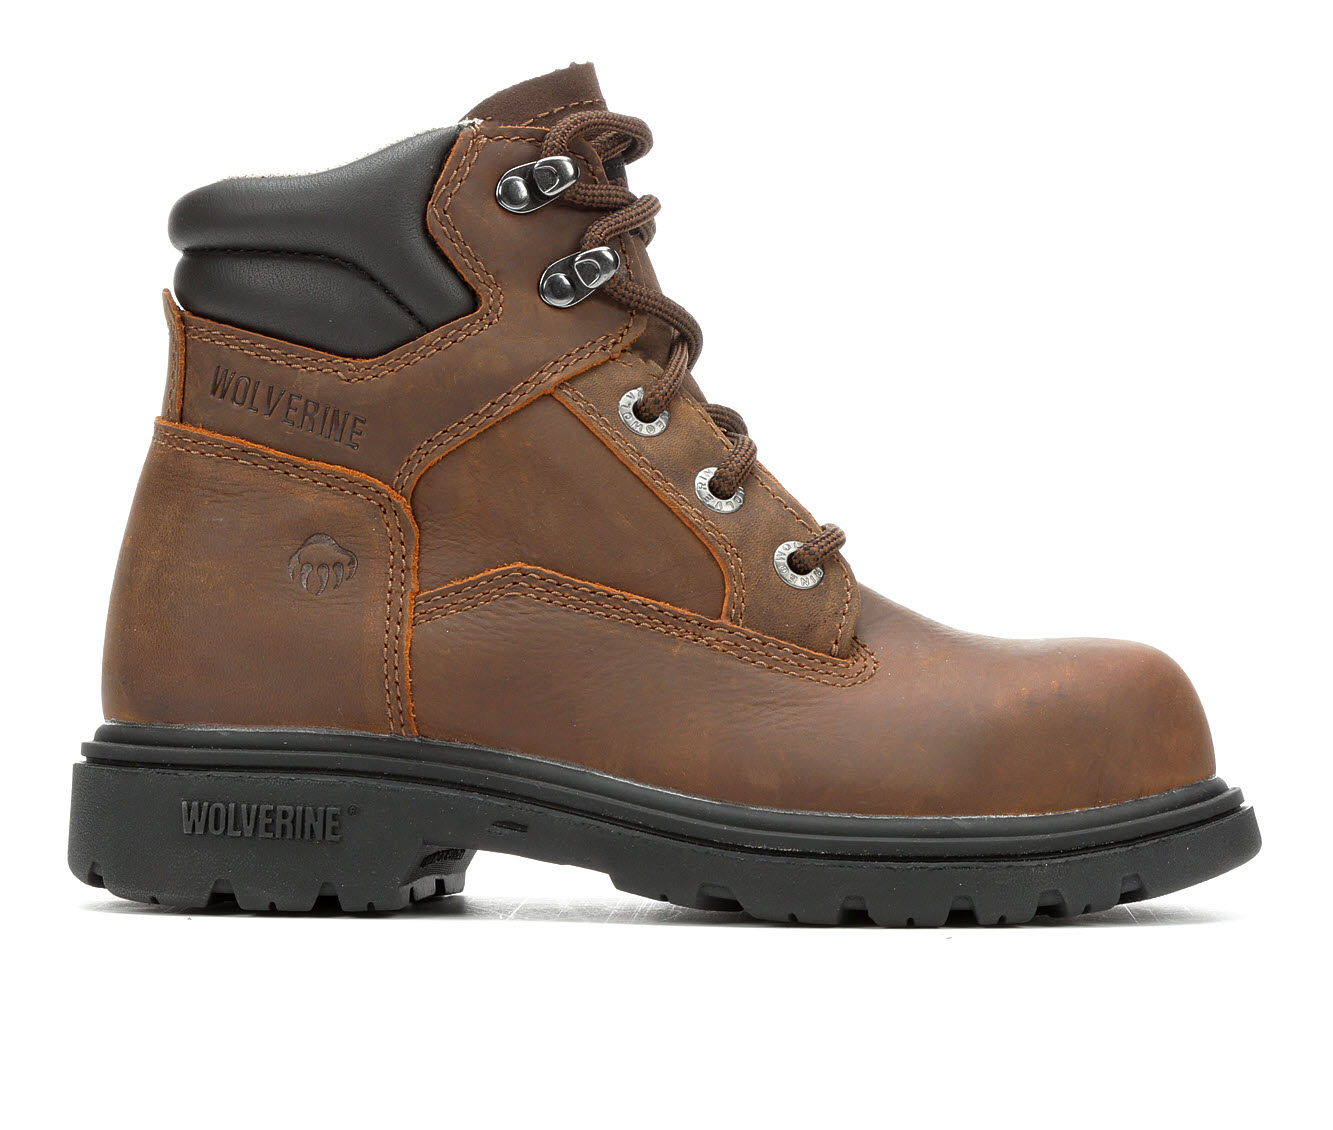 Wolverine Bulldozer Steel Toe Men's Boots (Brown Leather)